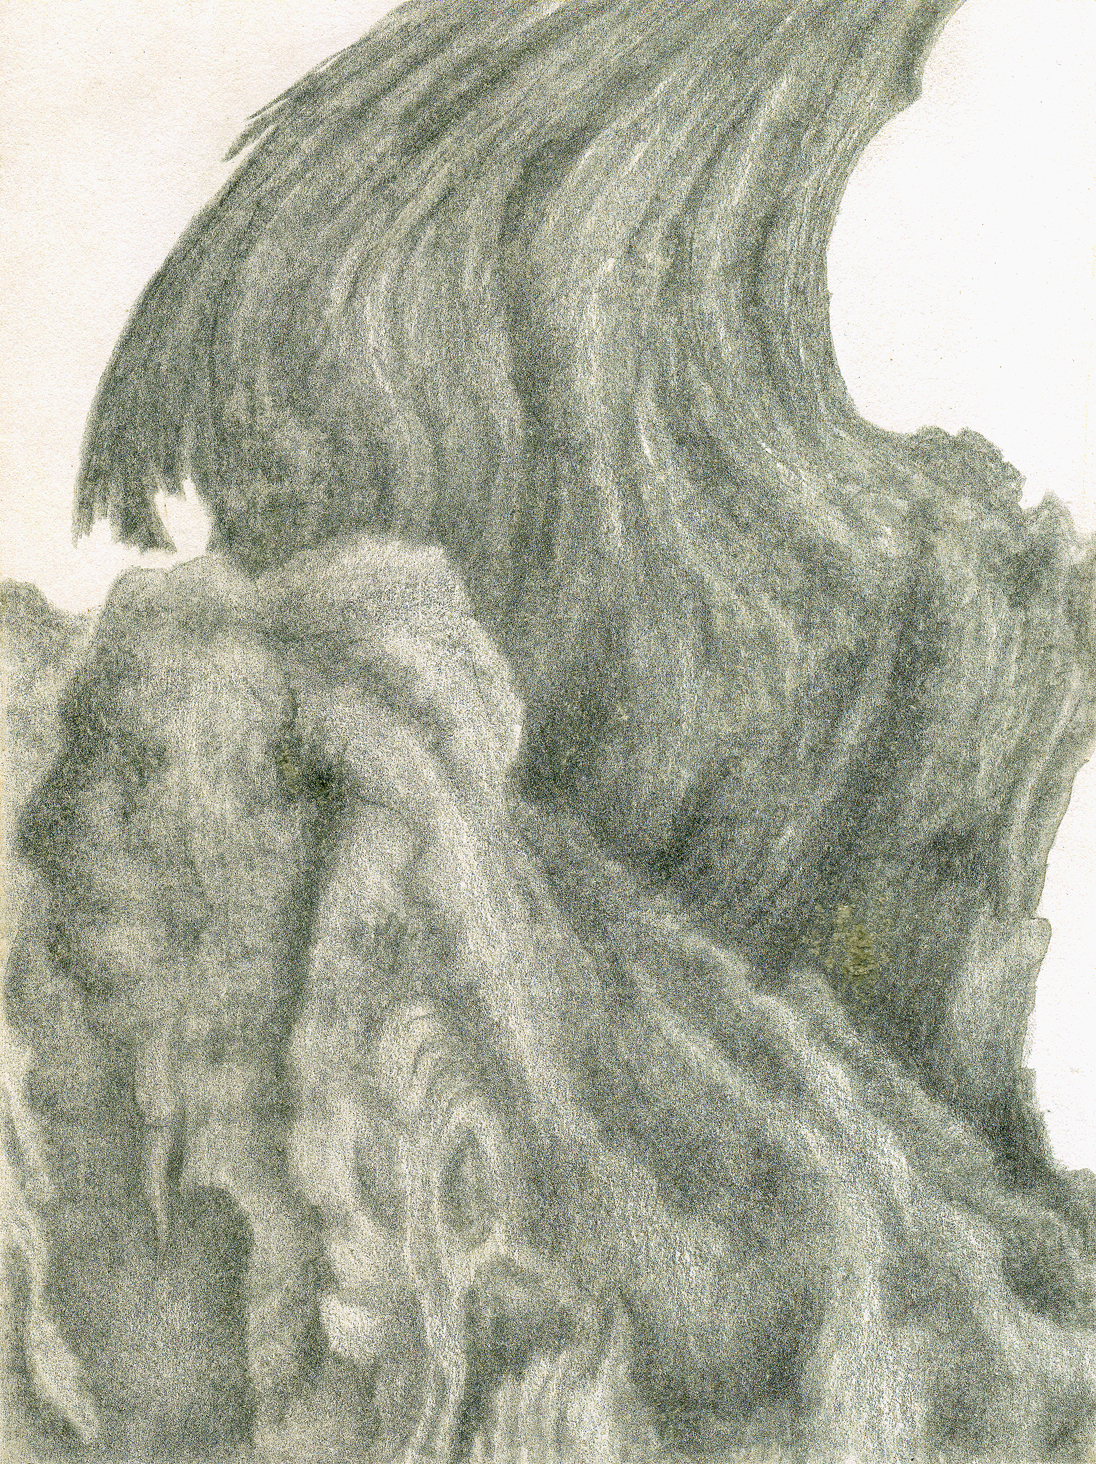 August Olive, Sousel, silverpoint, Jeannine Cook artist